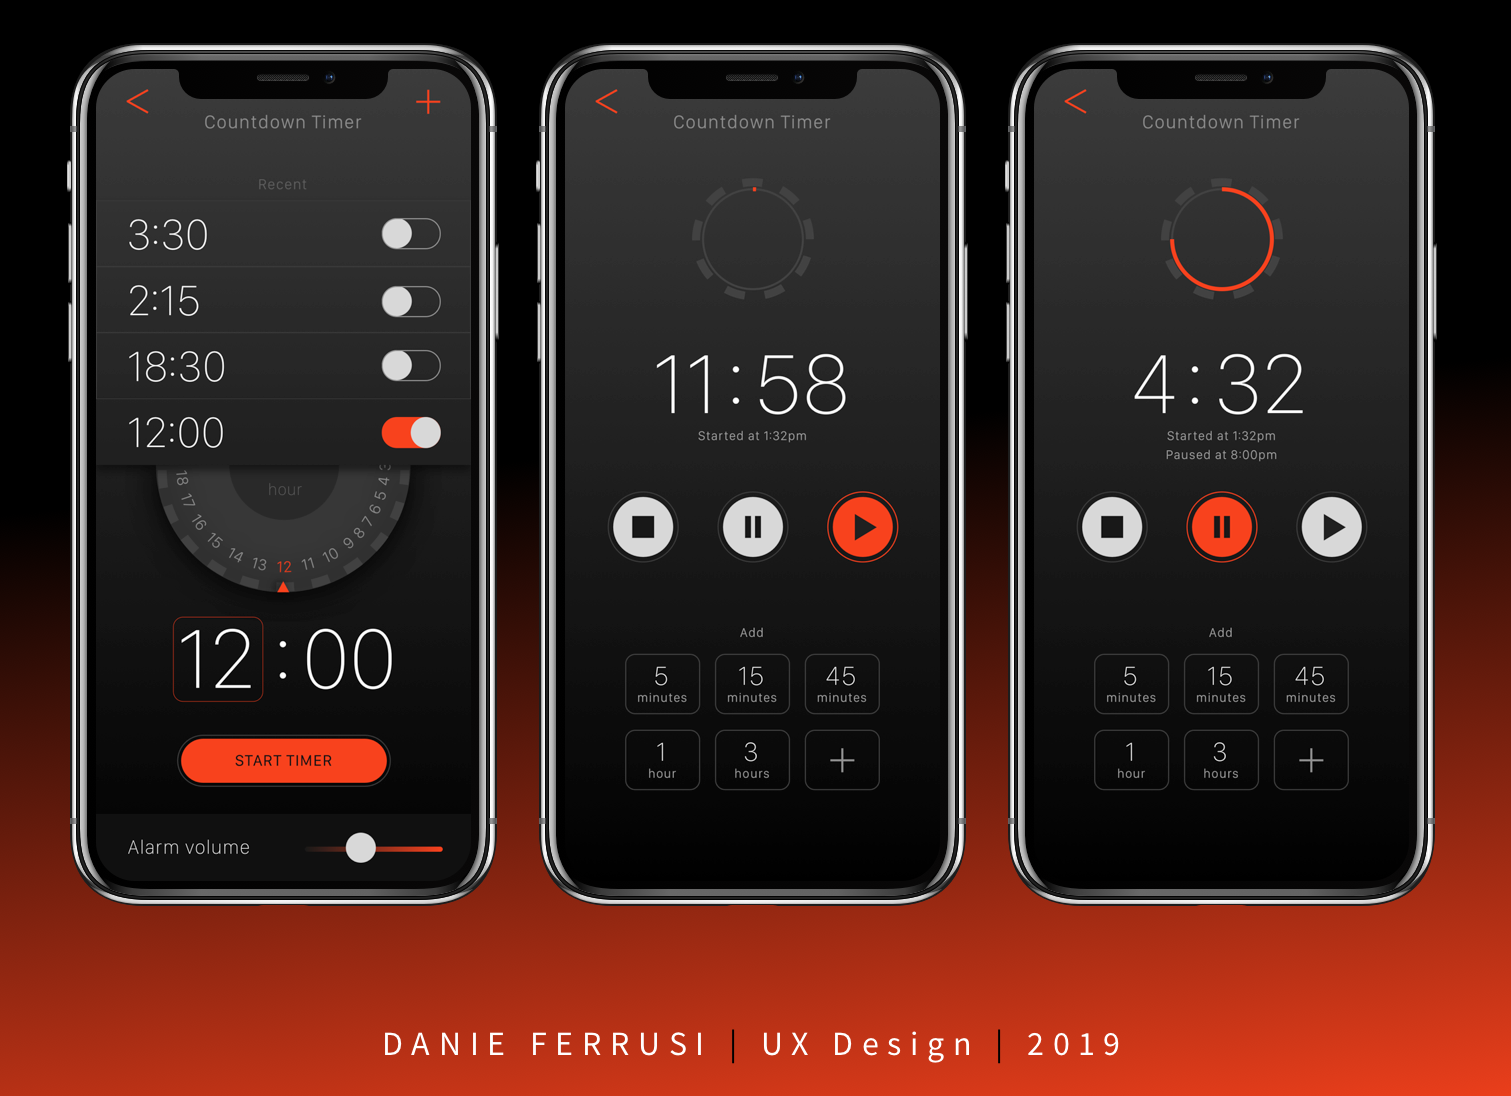 Day 014 : Create a countdown timer